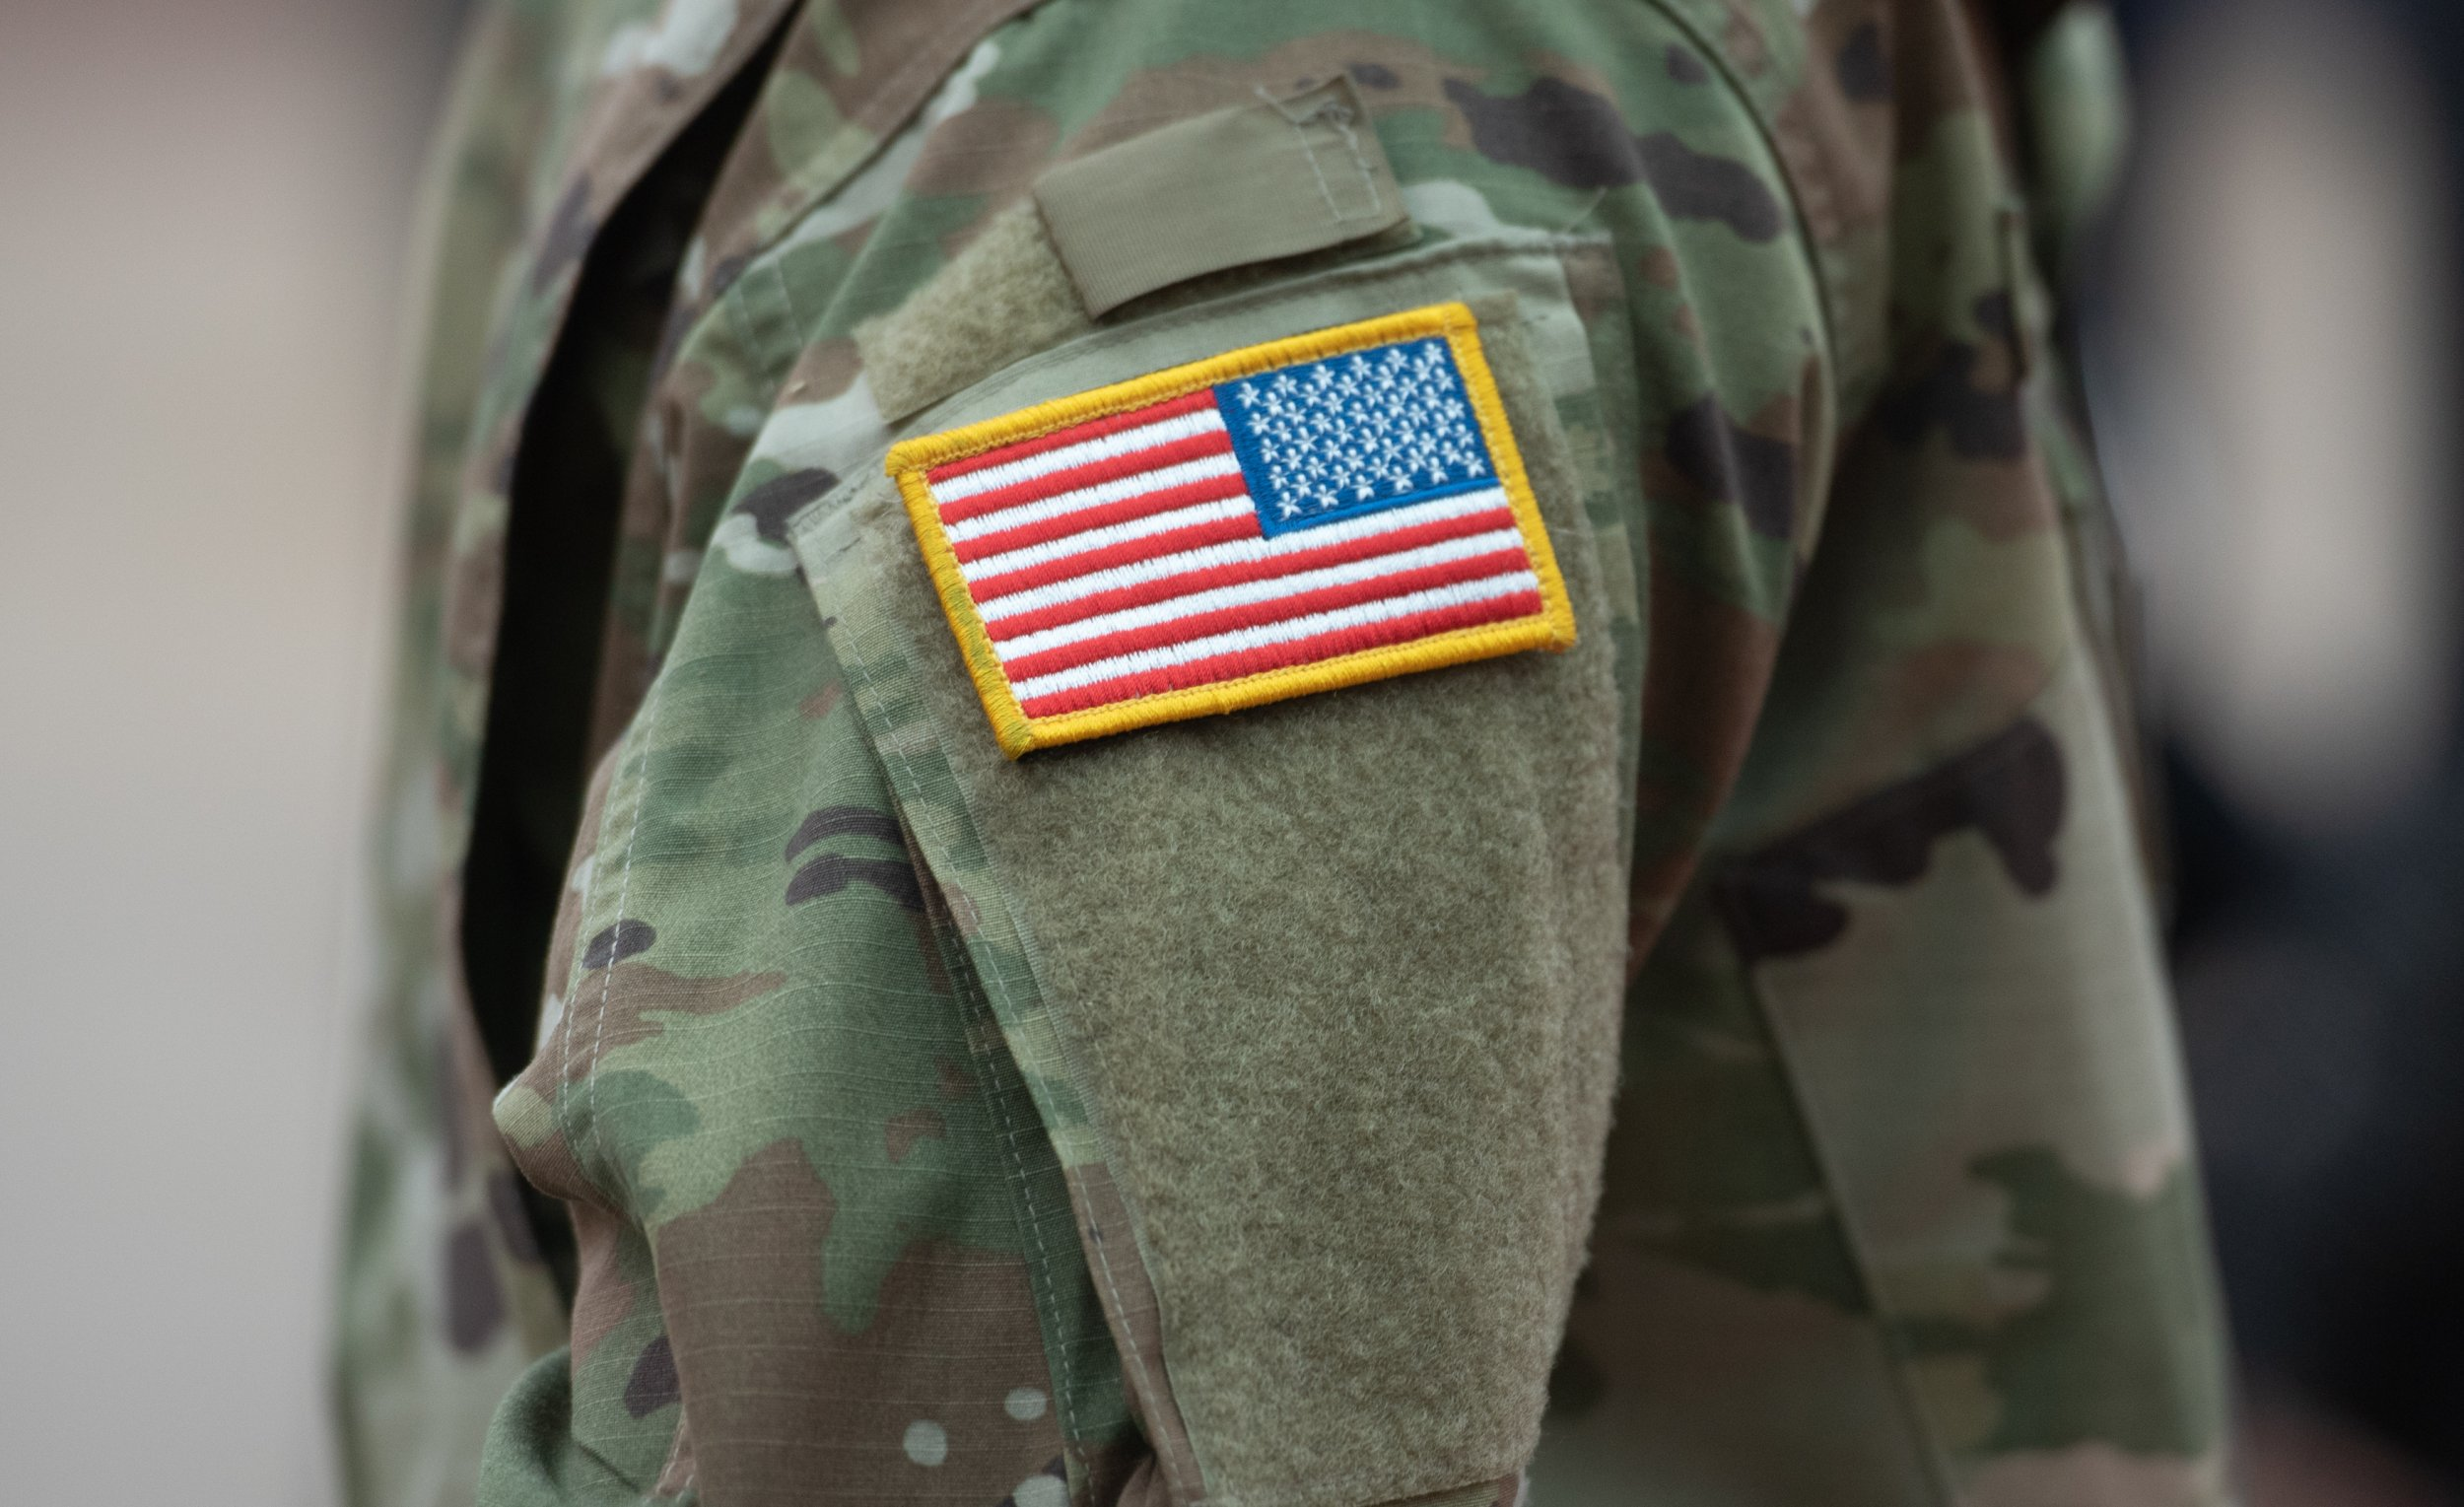 23 Percent of College Students Who Served in Military